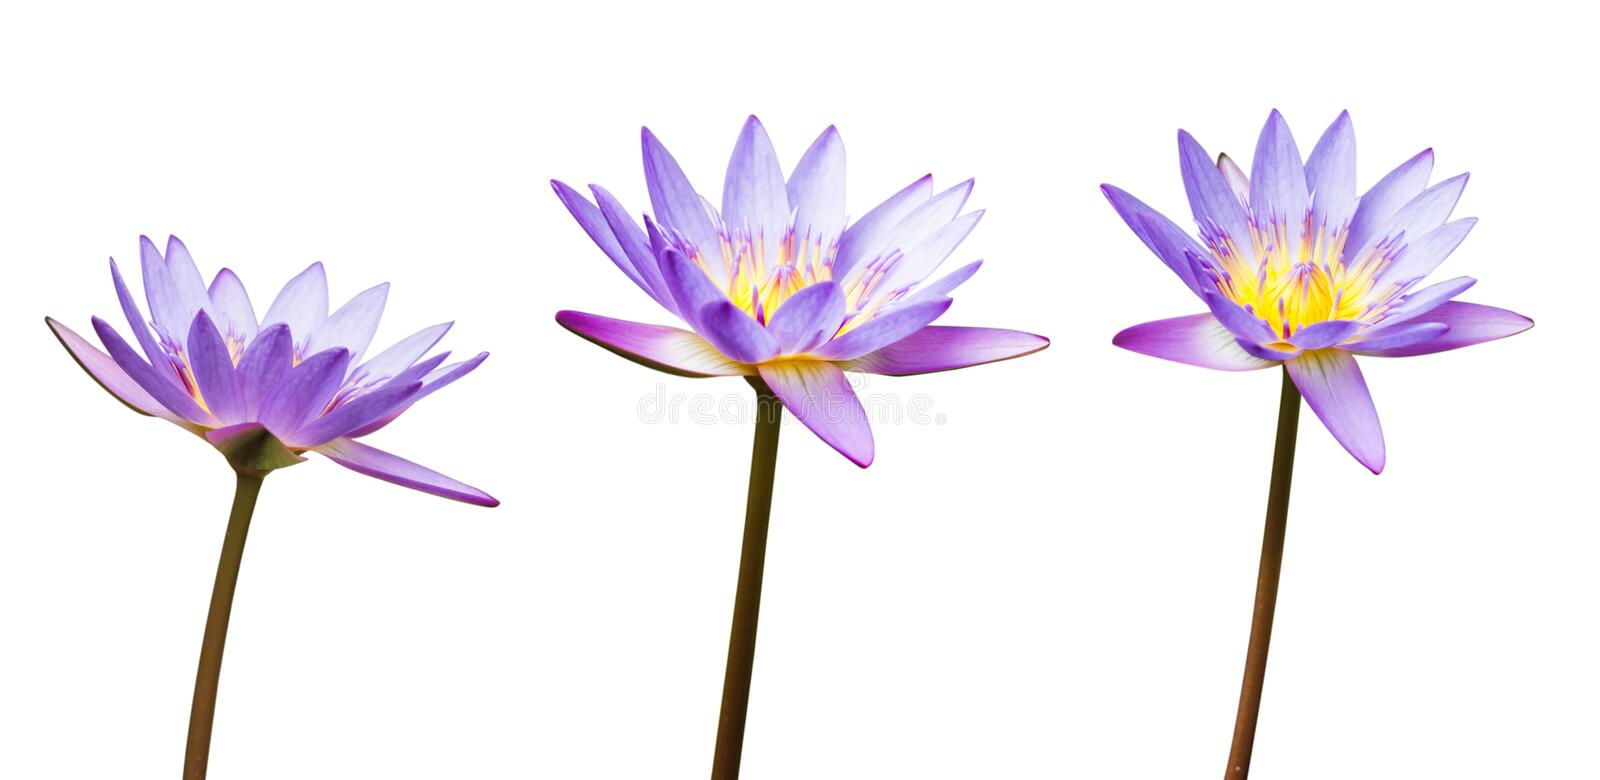 Purple lotus flower or water lily isolated on white background. Have clipping path easy for cut out. Flowers for Buddhism.  stock photos